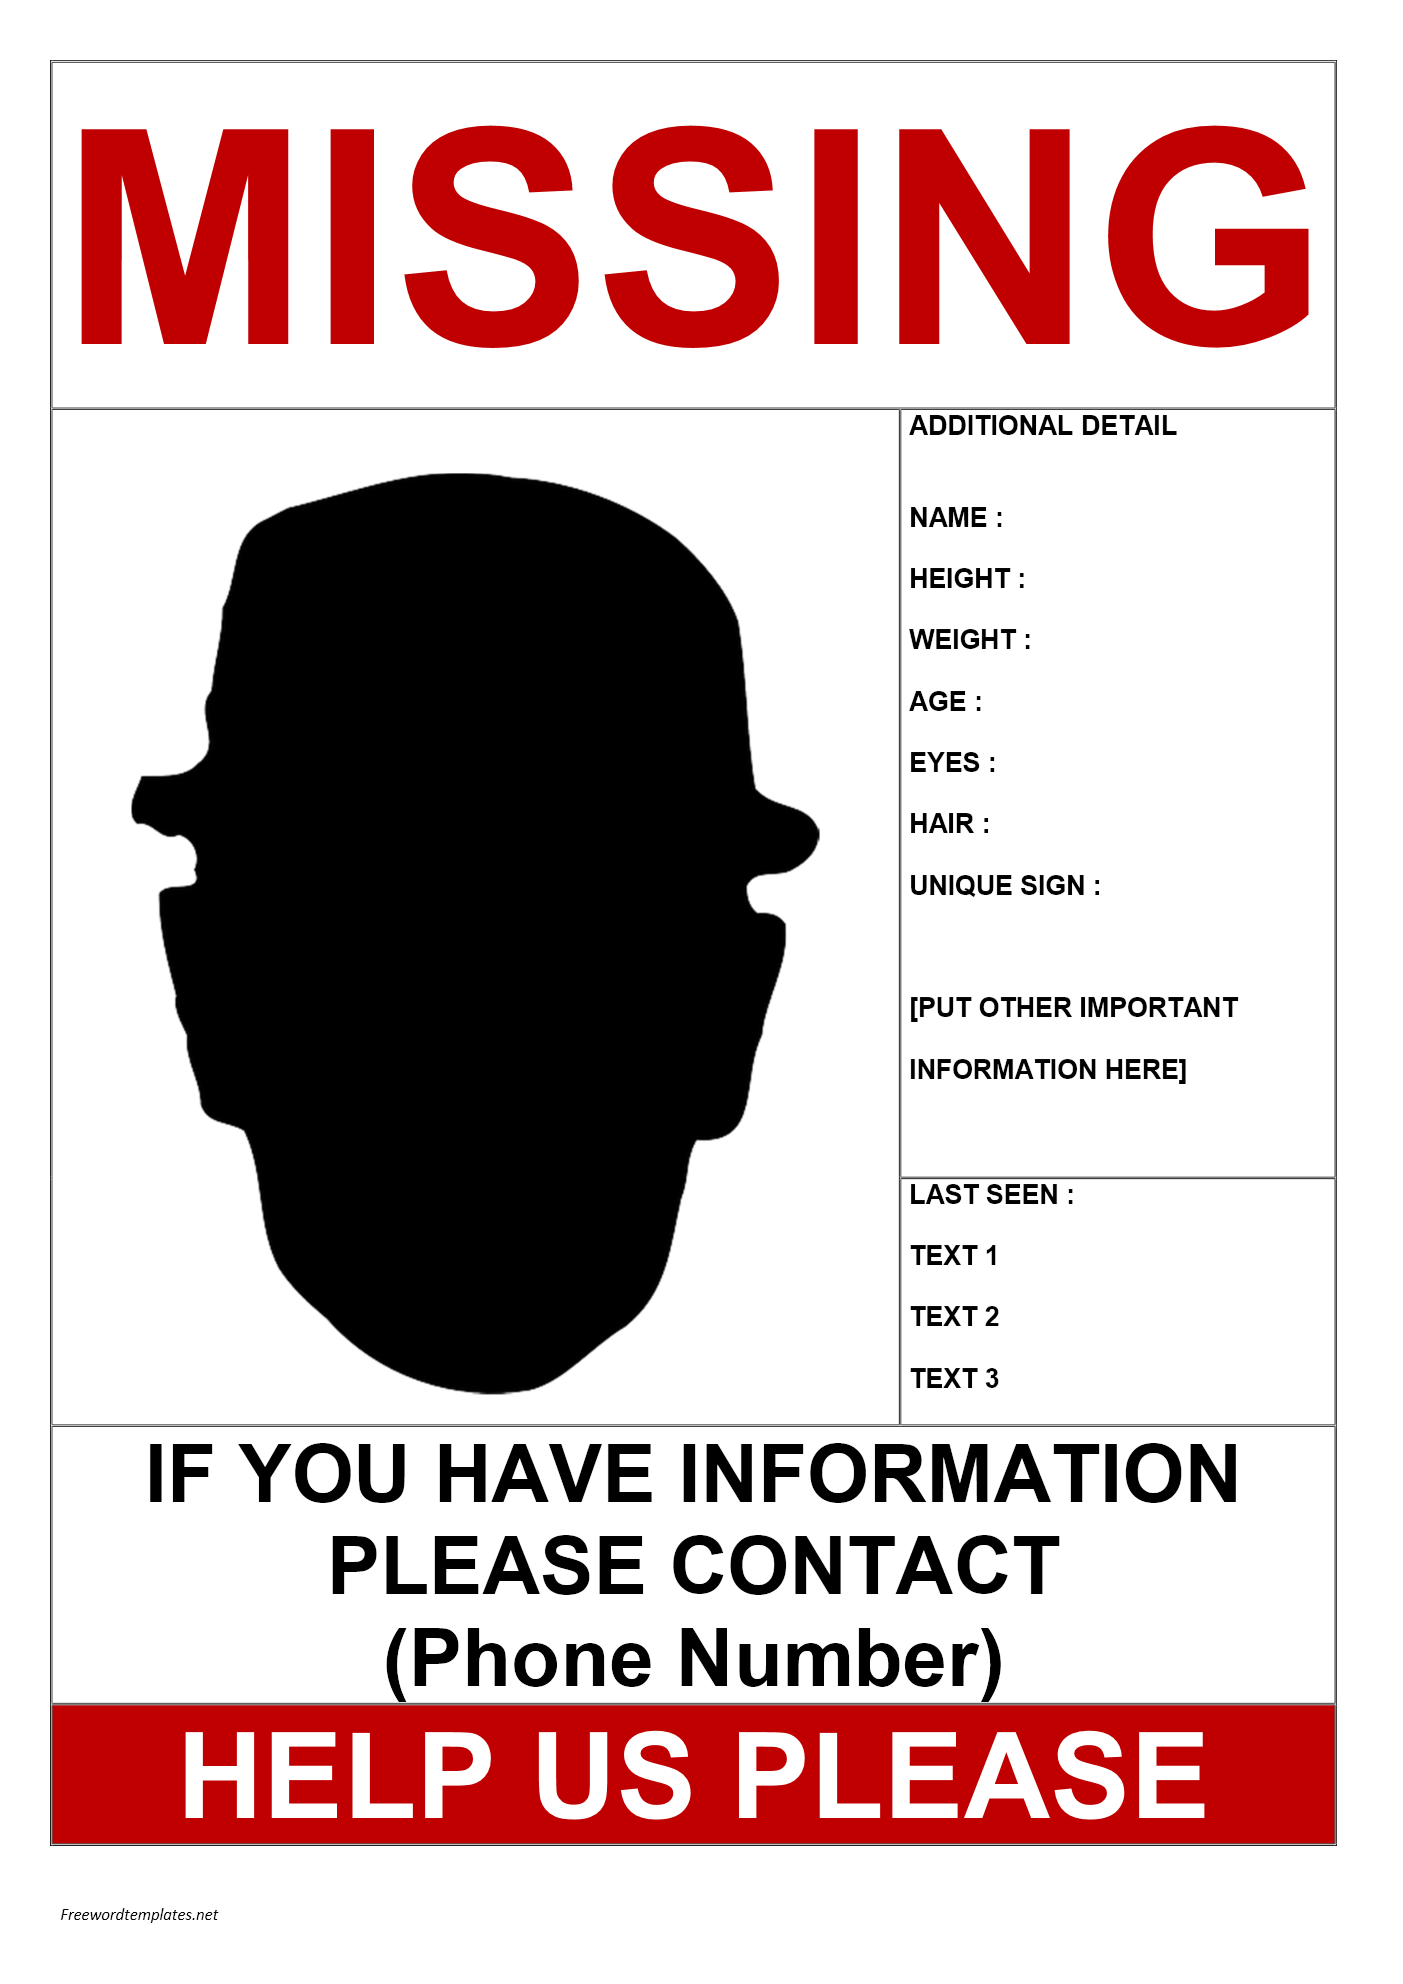 Person Poster Template – Missing Person Flyer